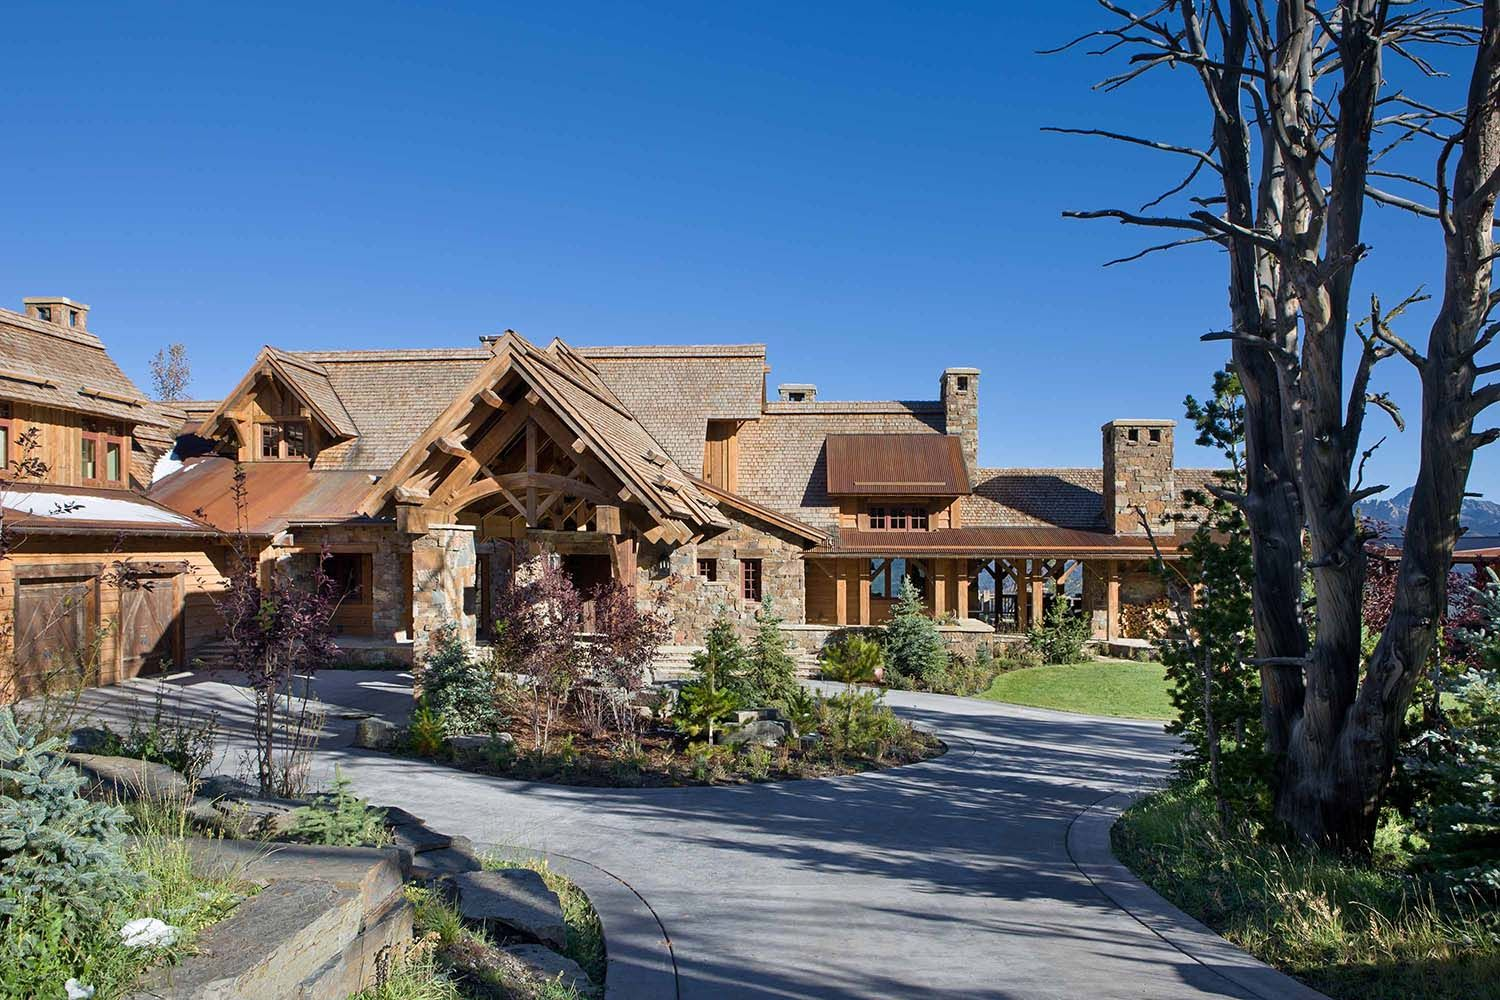 Exceptional Rustic Mountain Retreat Boasts Lodge Style Appeal In Big Sky, Montana Great Pictures